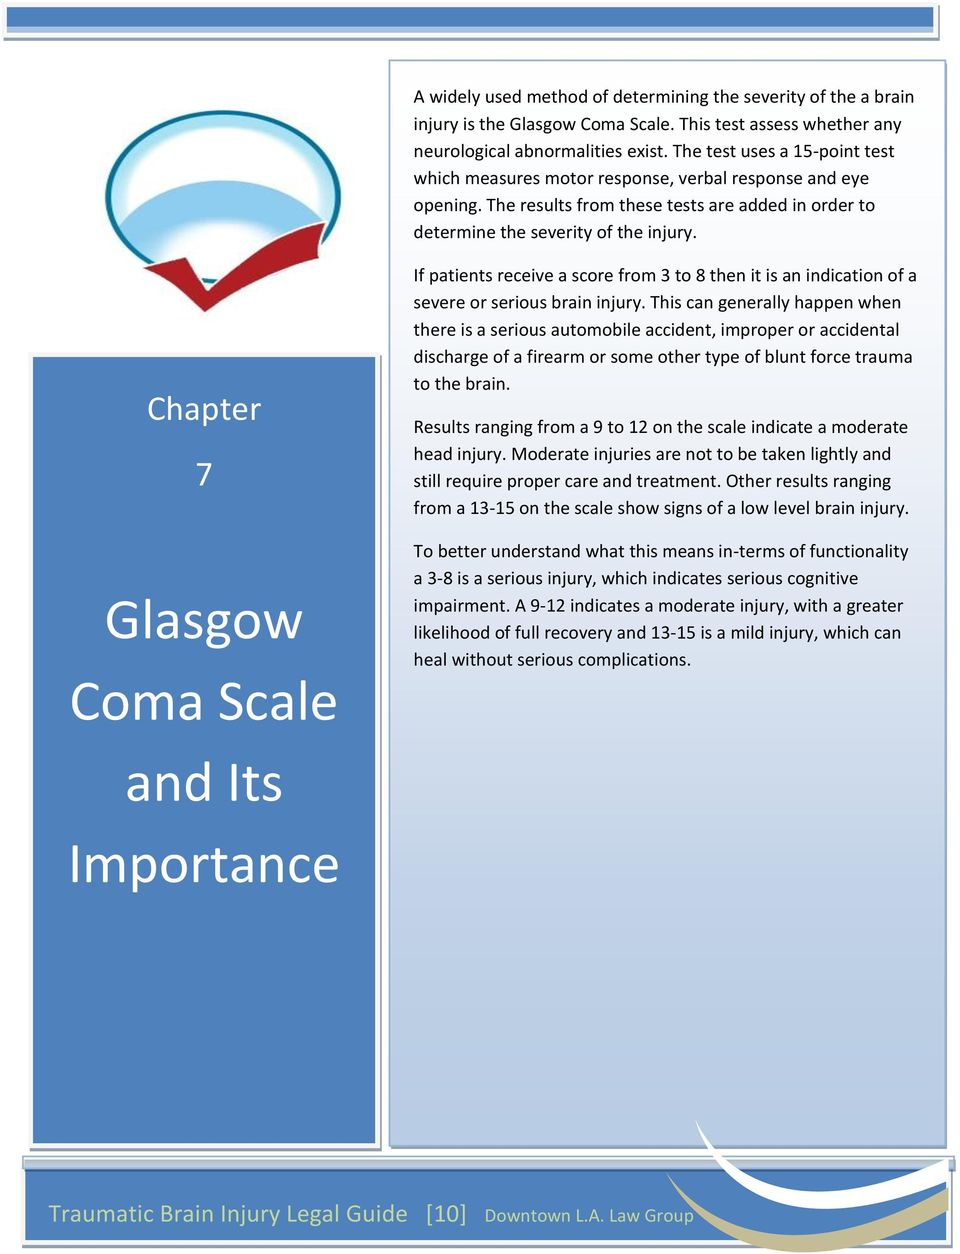 Chapter 7 Glasgow Coma Scale and Its Importance If patients receive a score from 3 to 8 then it is an indication of a severe or serious brain injury.